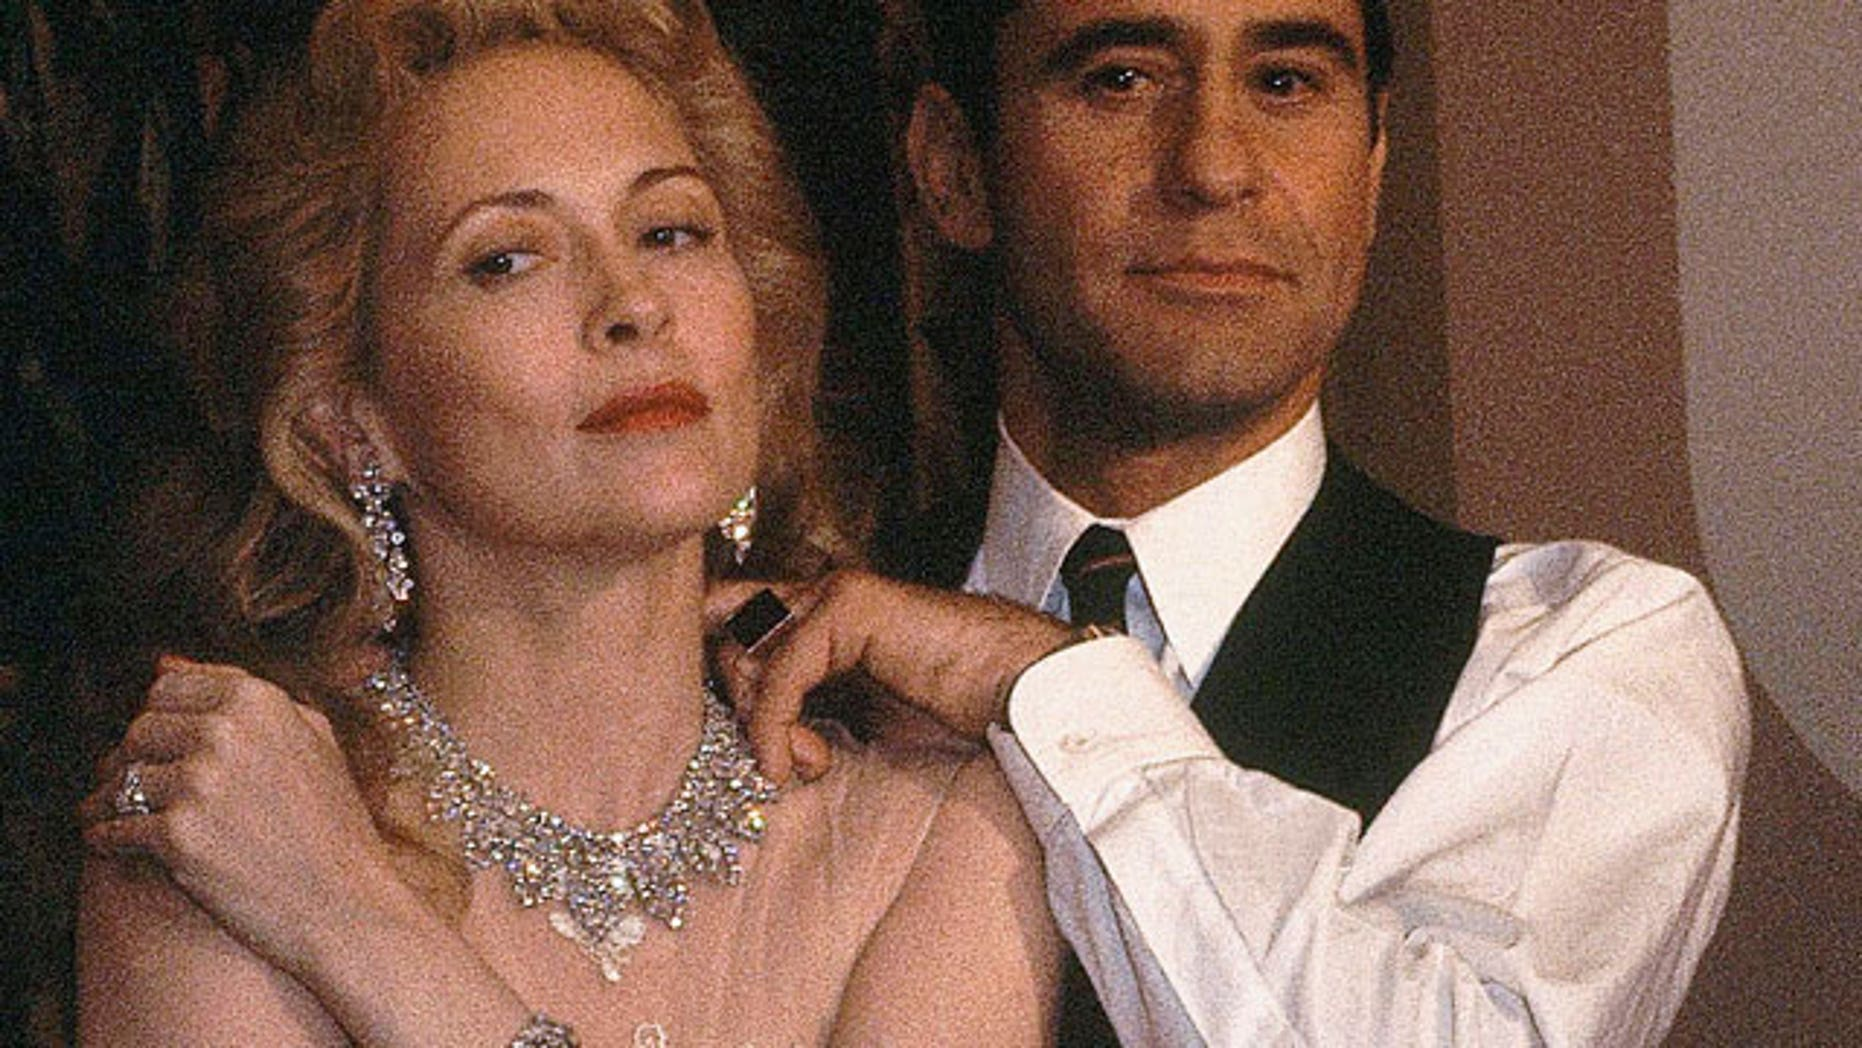 """This Nov. 11, 1980, file photo shows James Farentino and Faye Dunaway, who star in """"Evita Peron,"""" in Los Angeles. A family spokesman says actor Farentino, who appeared in dozens of movies and television shows, has died in a Los Angeles hospital. He was 73. (AP)"""